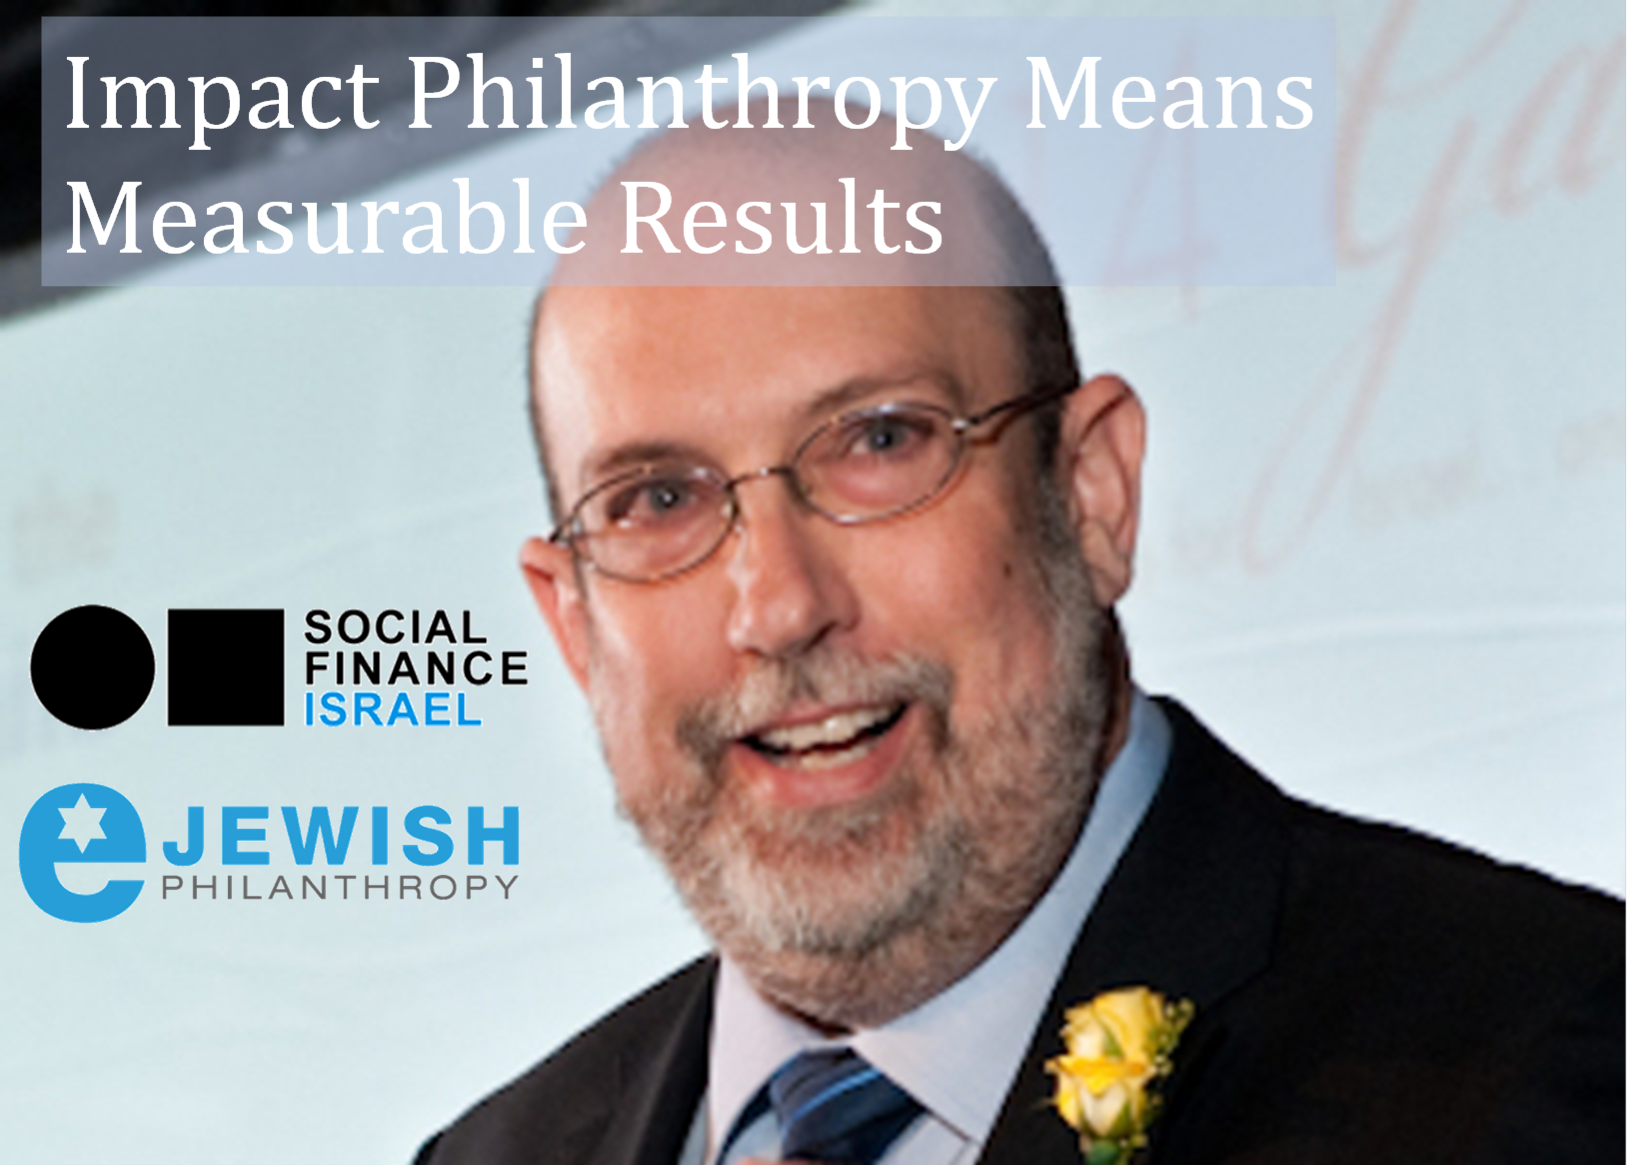 Impact Philanthropy Means Measurable Results